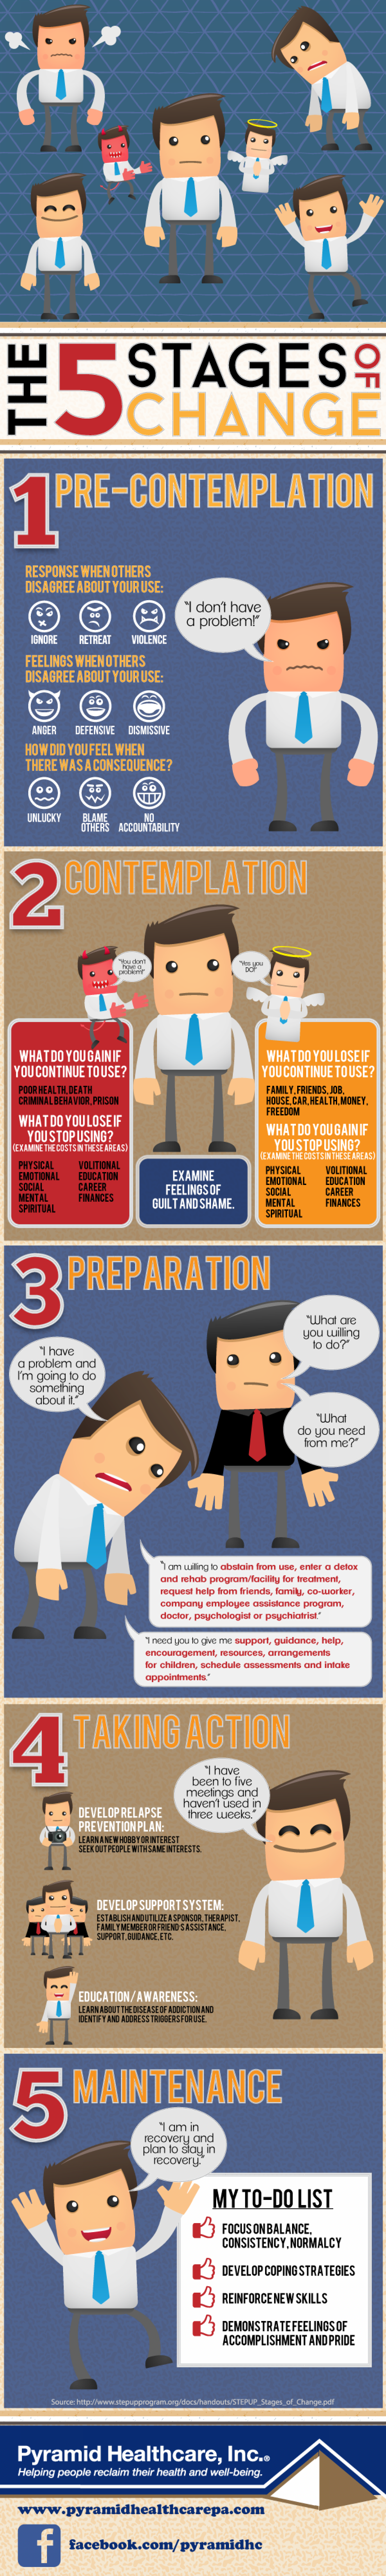 The 5 Stages of Change Infographic